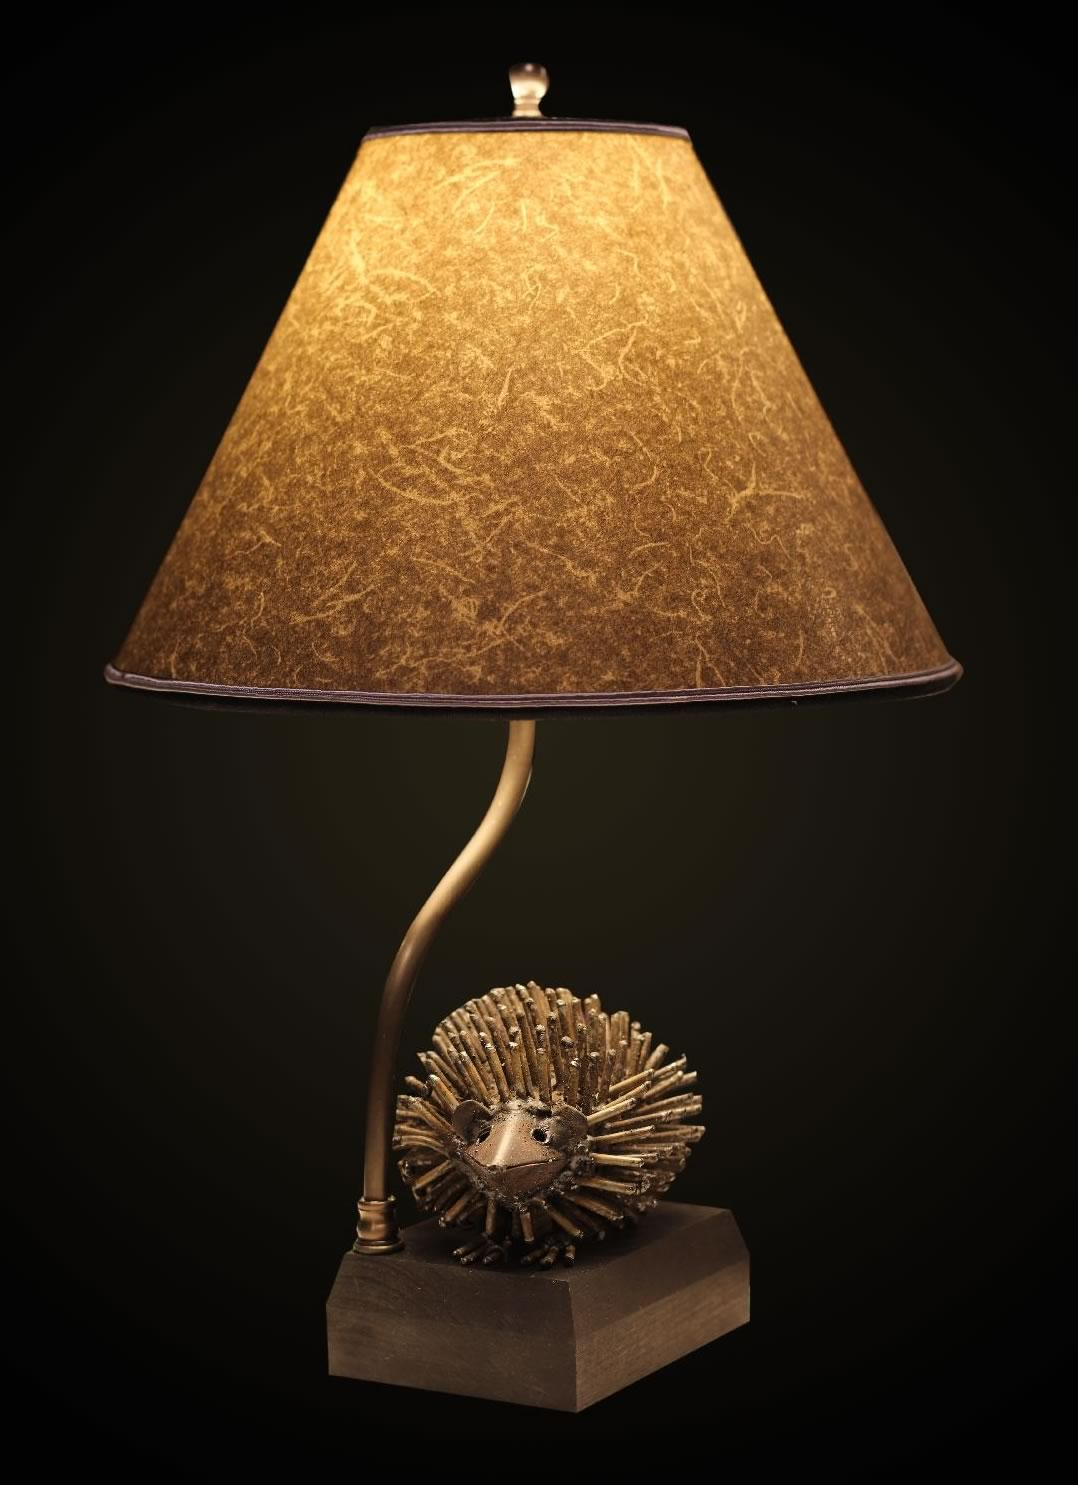 Recycled Metal Hedgehog Table Lamp With Round Gray